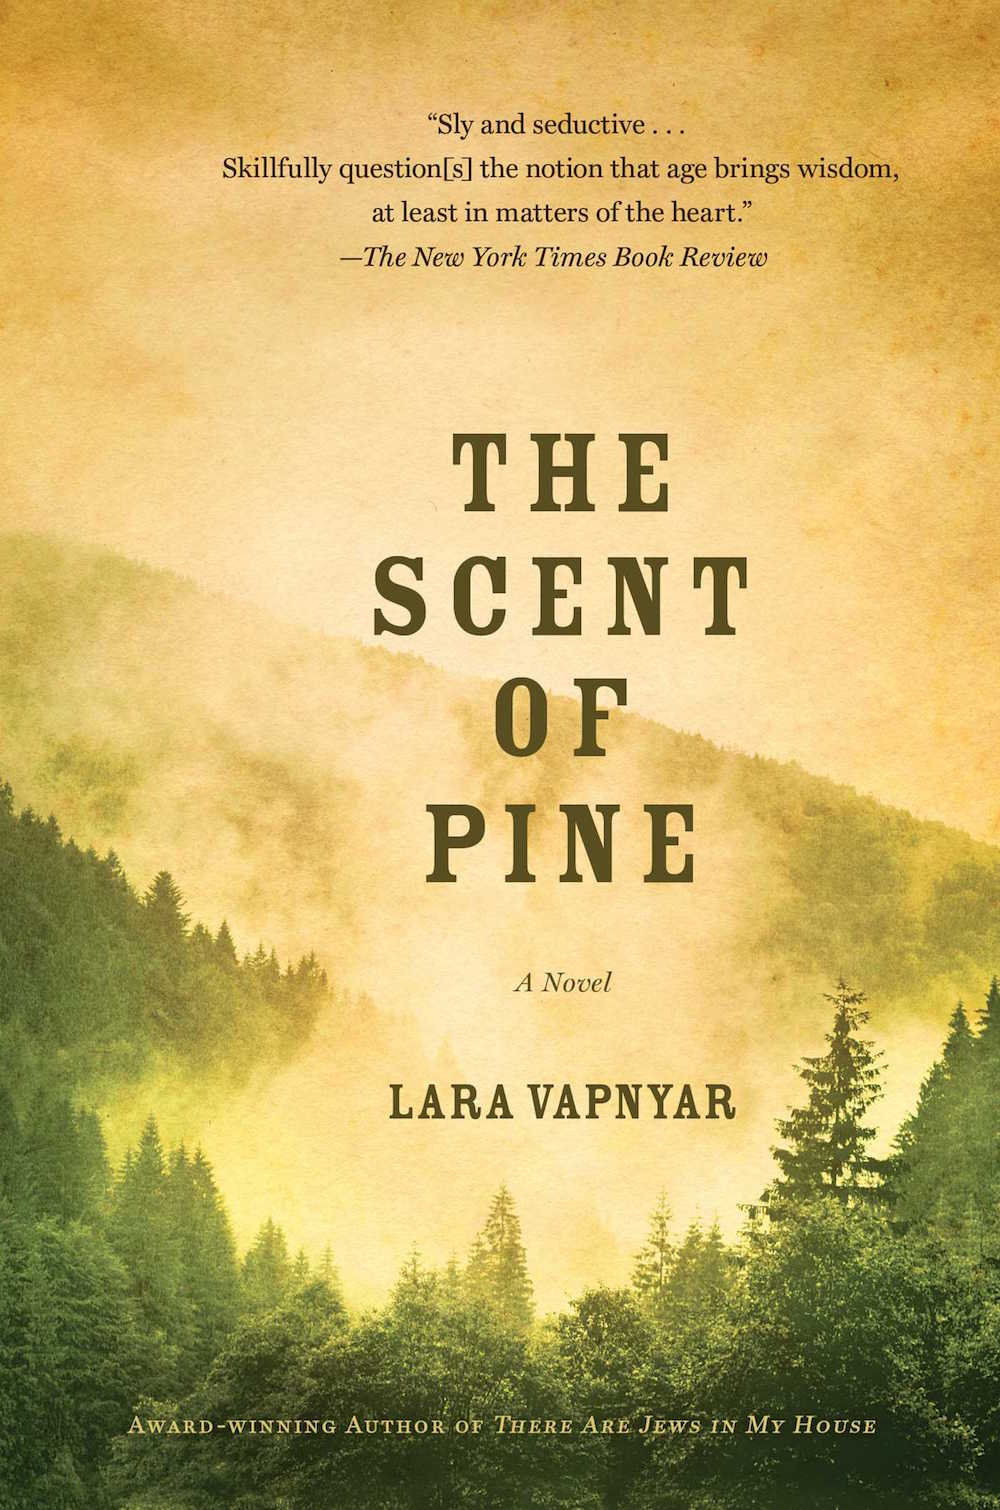 <em>The Scent of Pine</em> by Lara Vapnyar, published by Simon & Schuster.